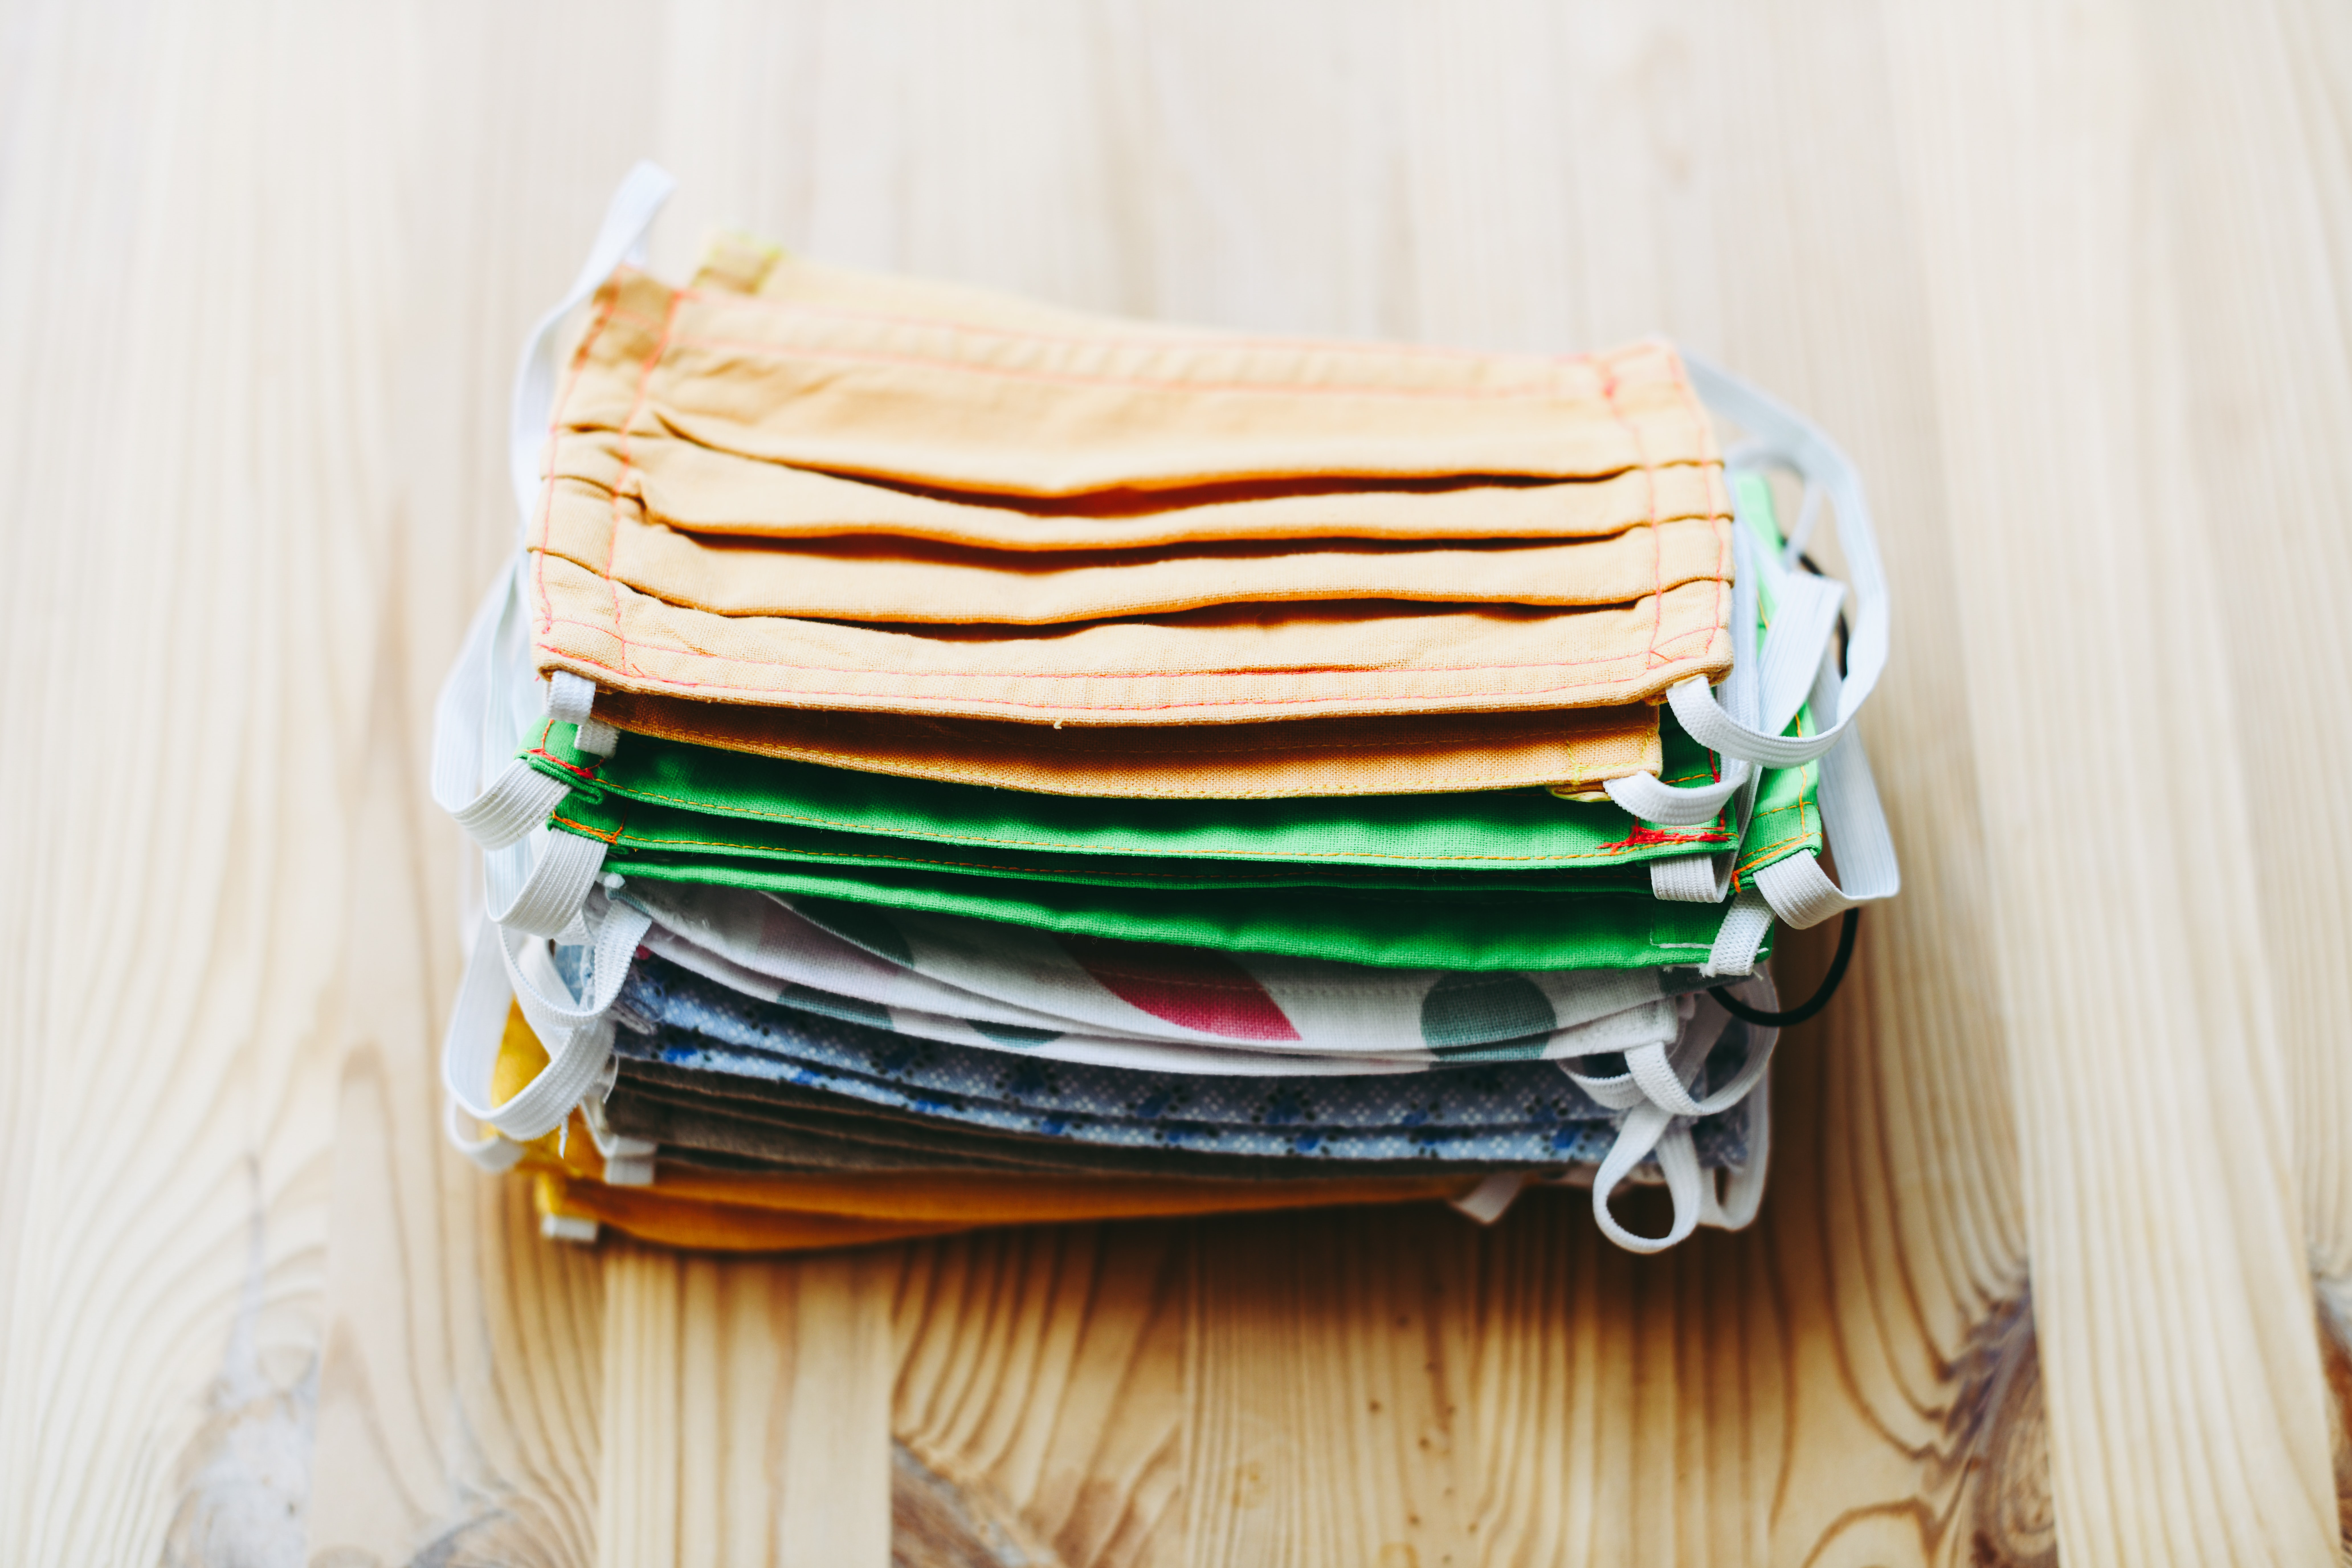 Reusable Face Masks 101's featured image